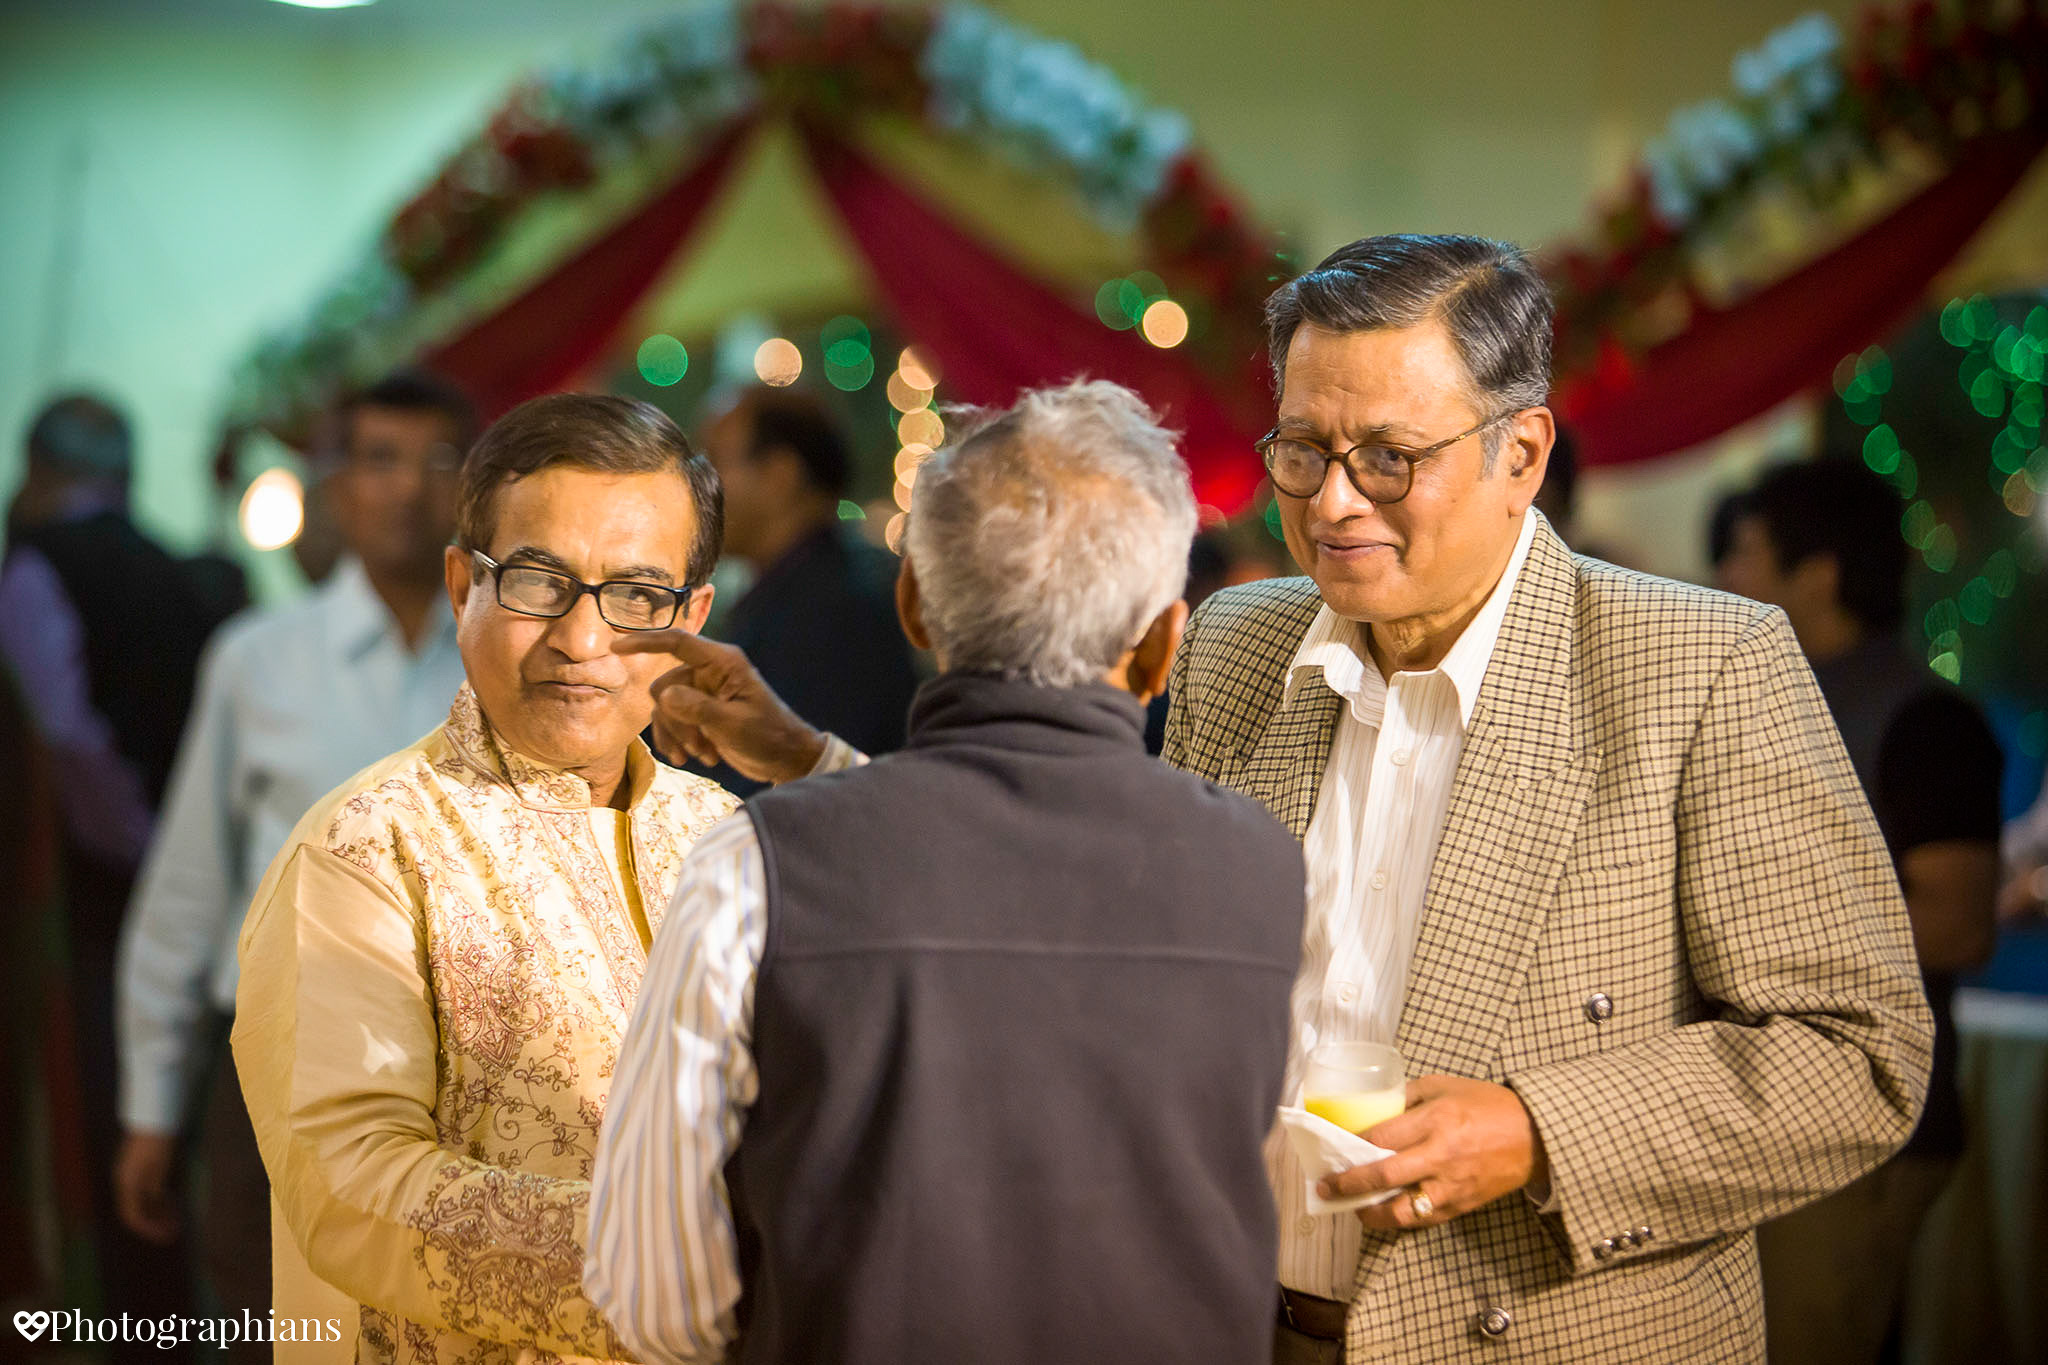 Photographians_Indian_Wedding_Durgapur_054